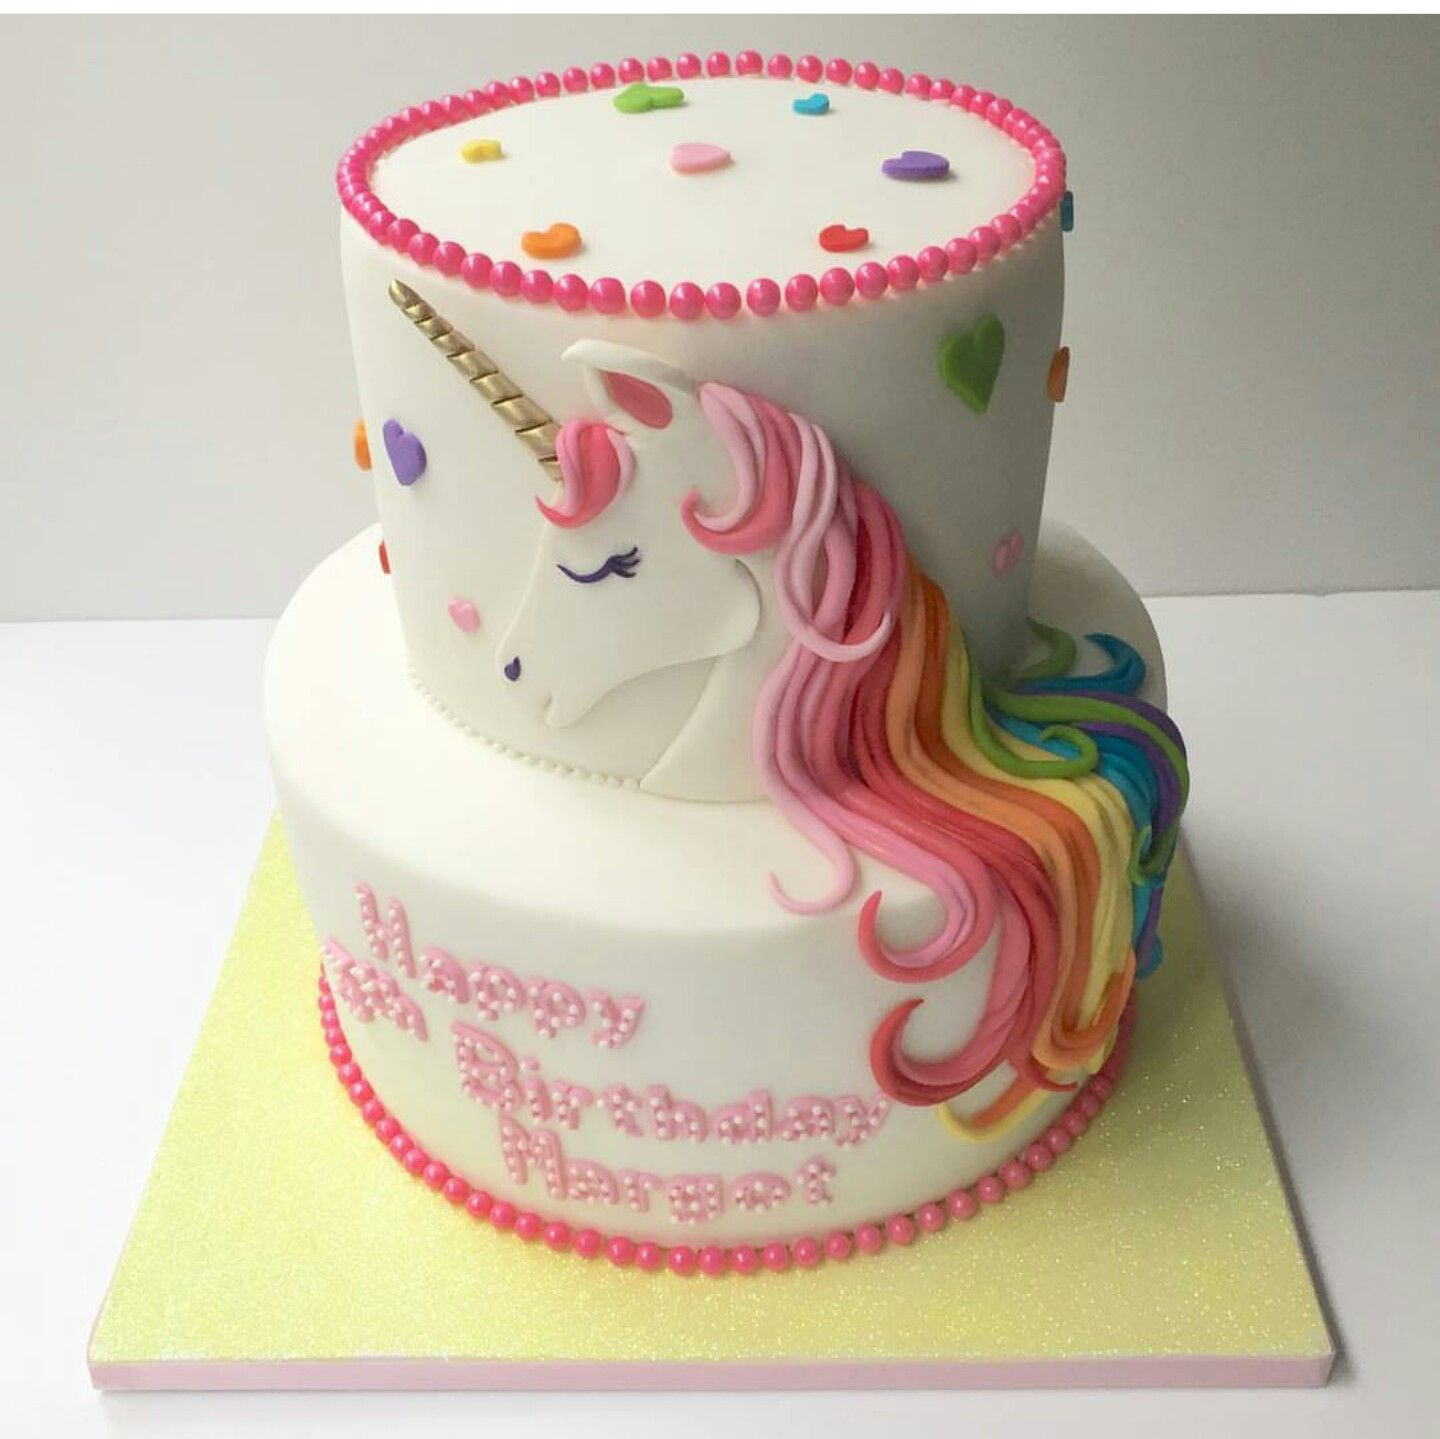 We Found This Unicorn Cake On